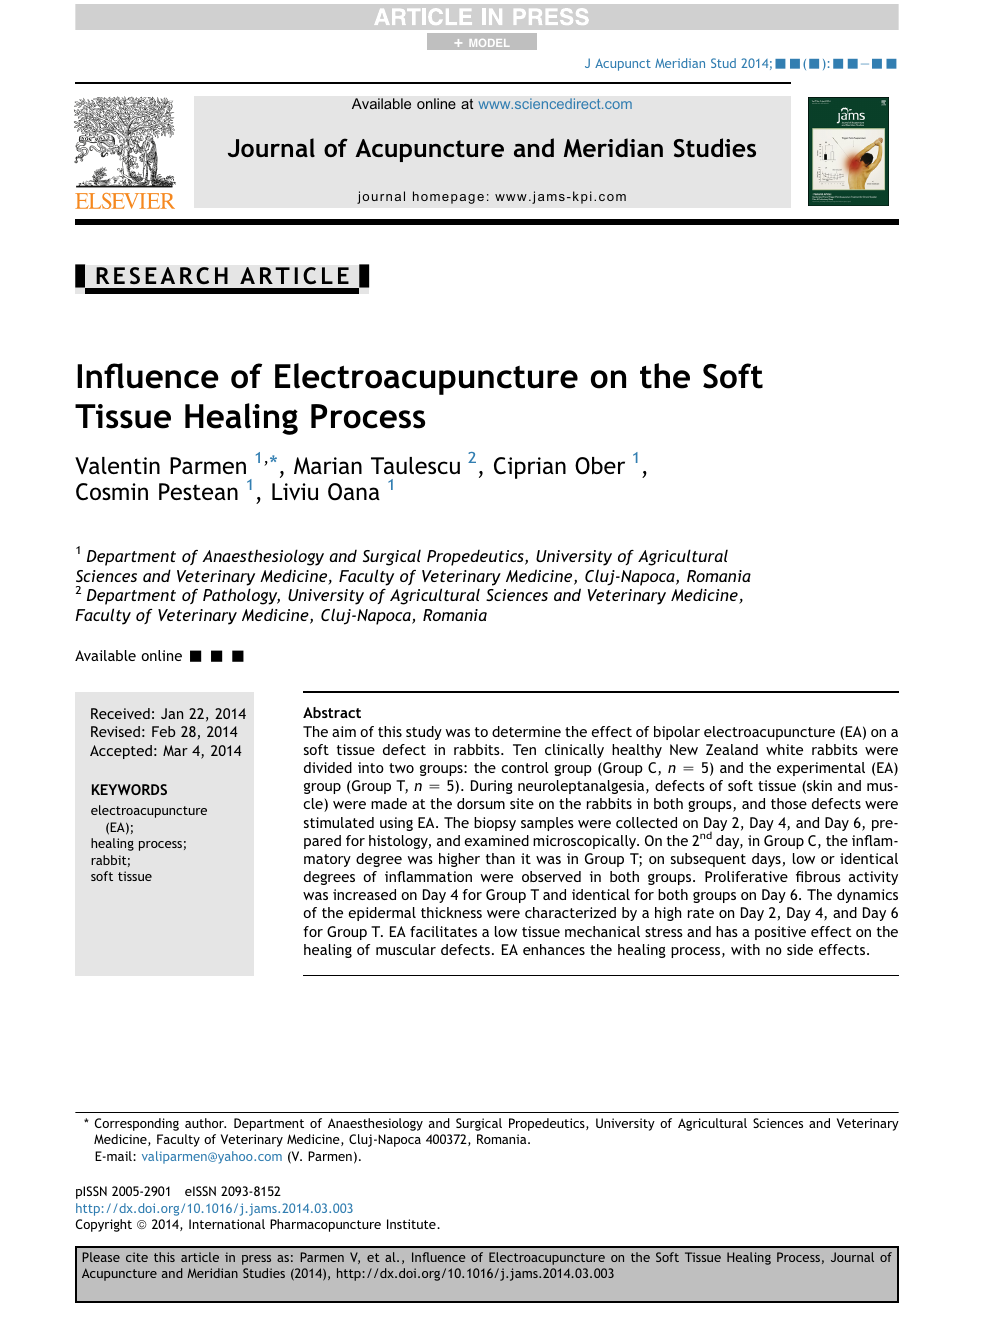 Influence Of Electroacupuncture On The Soft Tissue Healing Process Topic Of Research Paper In Veterinary Science Download Scholarly Article Pdf And Read For Free On Cyberleninka Open Science Hub